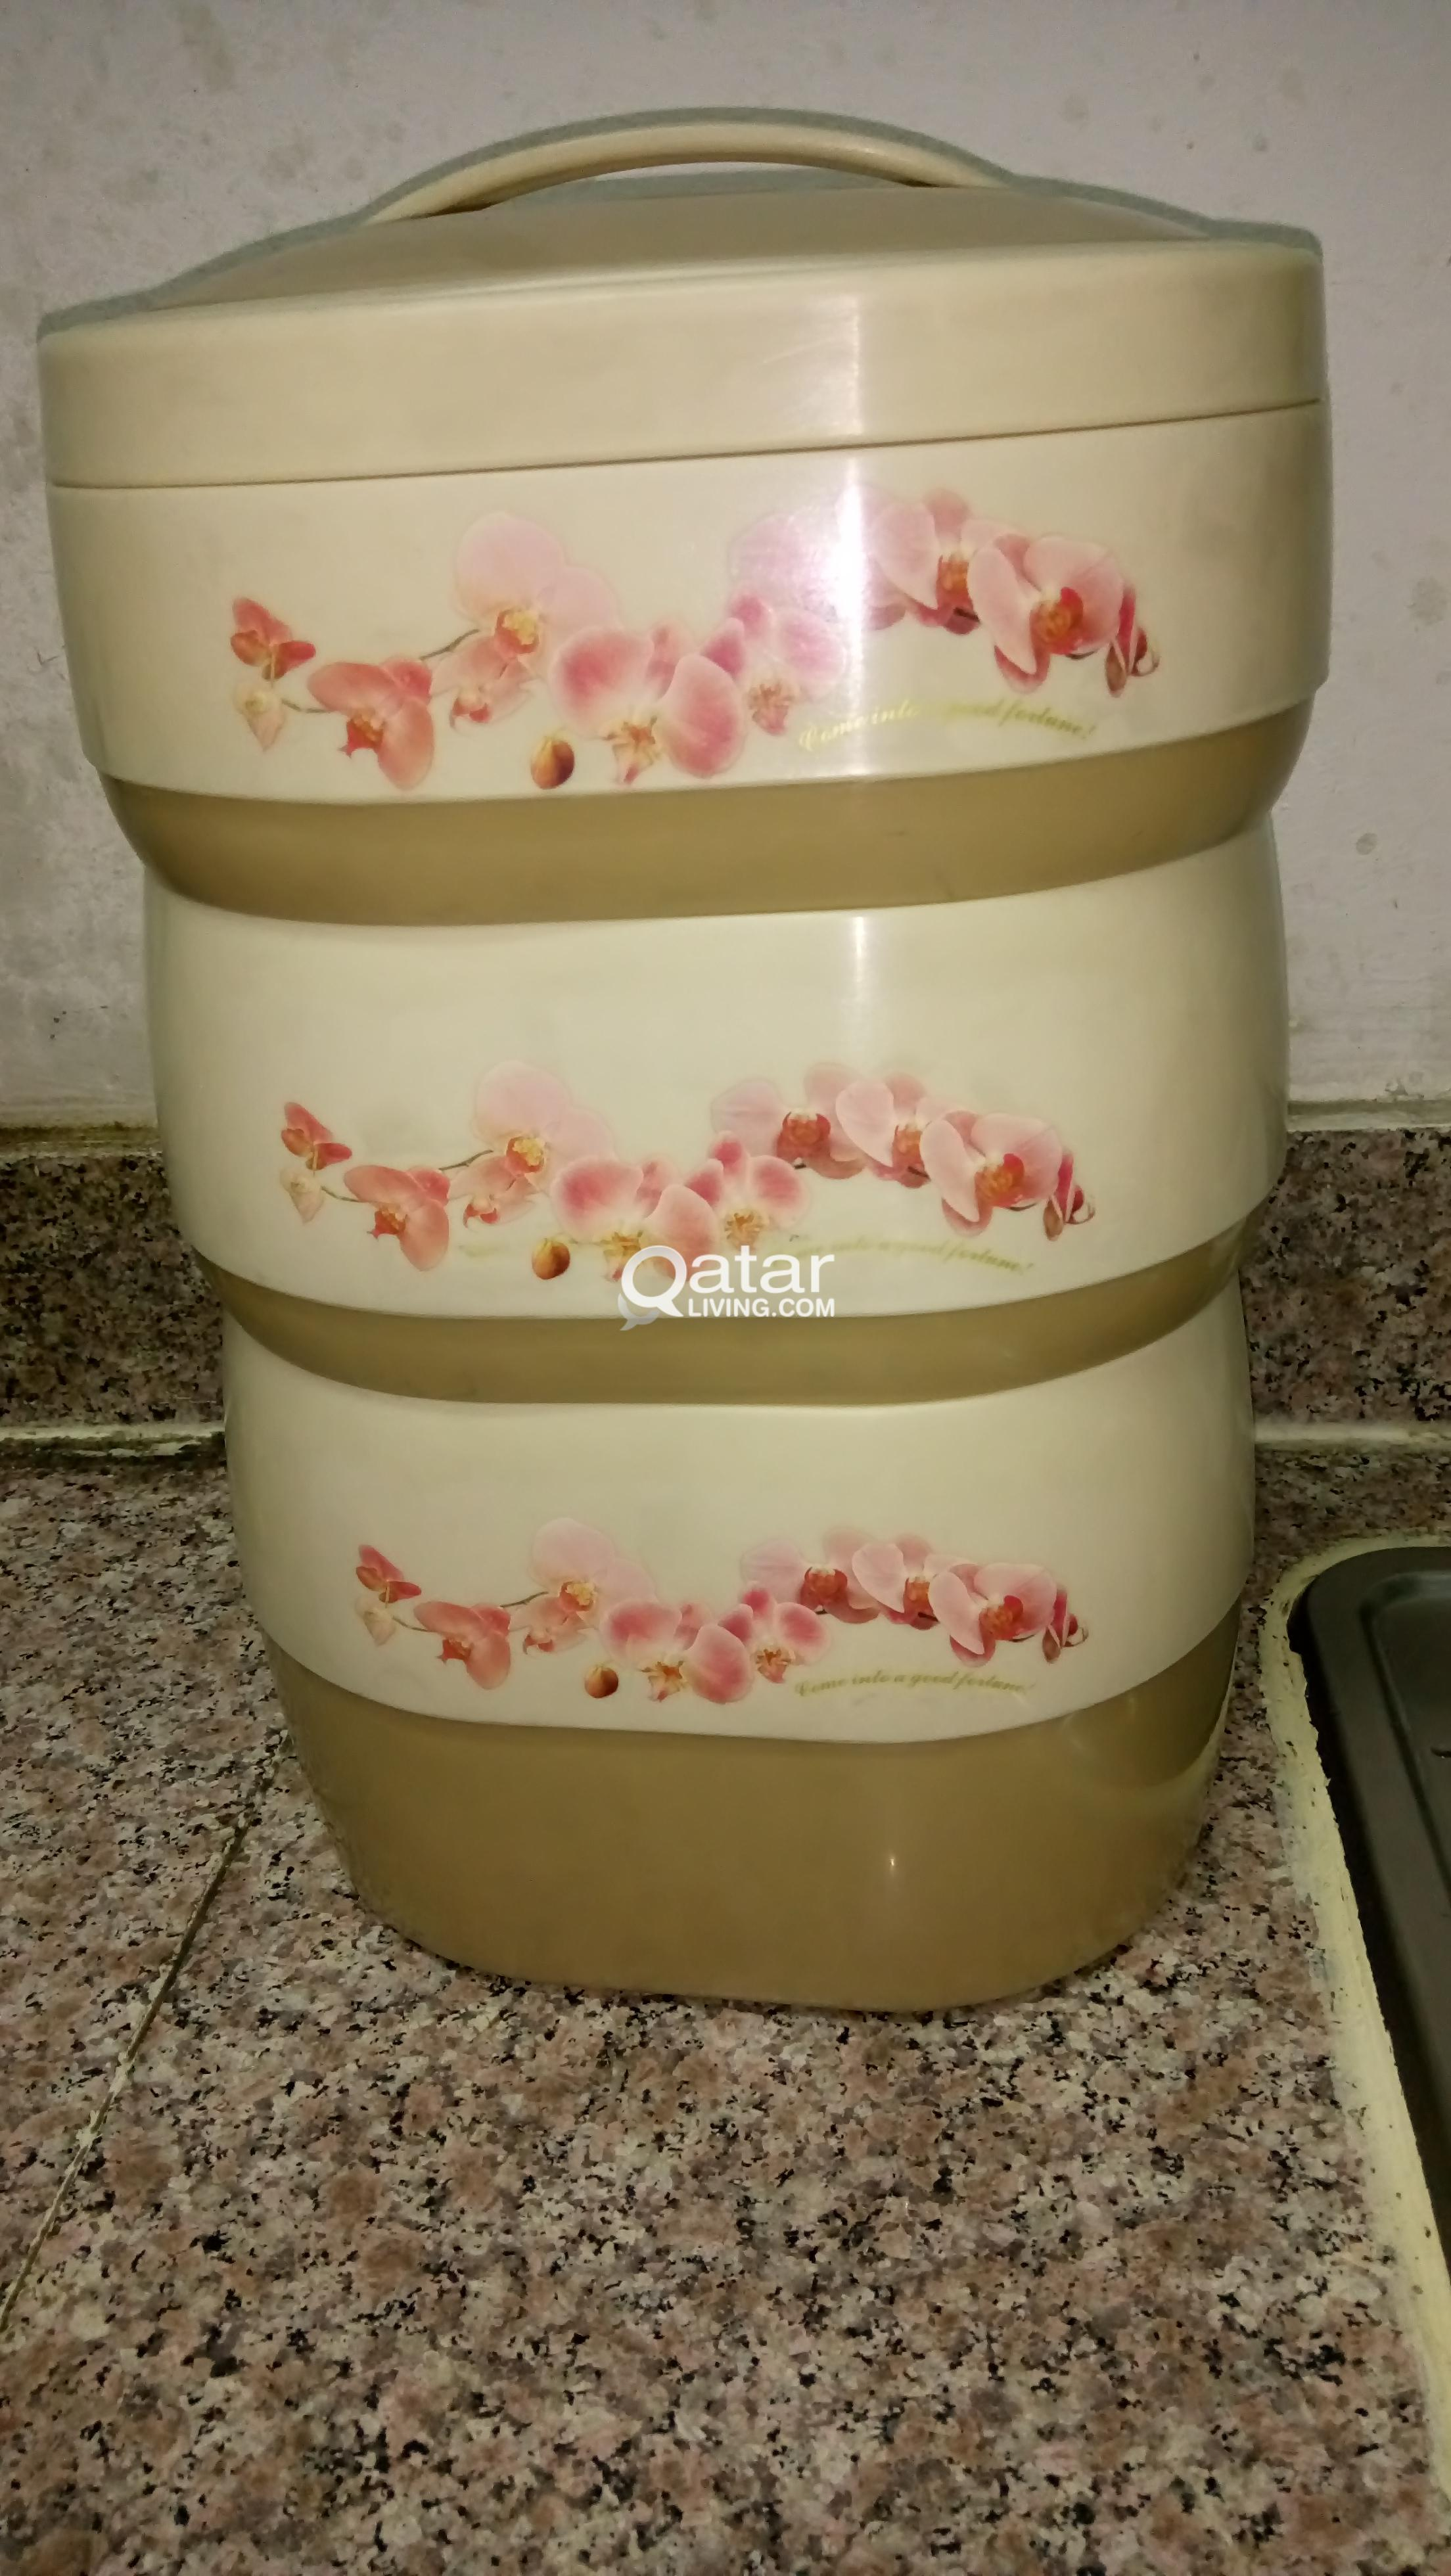 Family Hot Food Container | Qatar Living